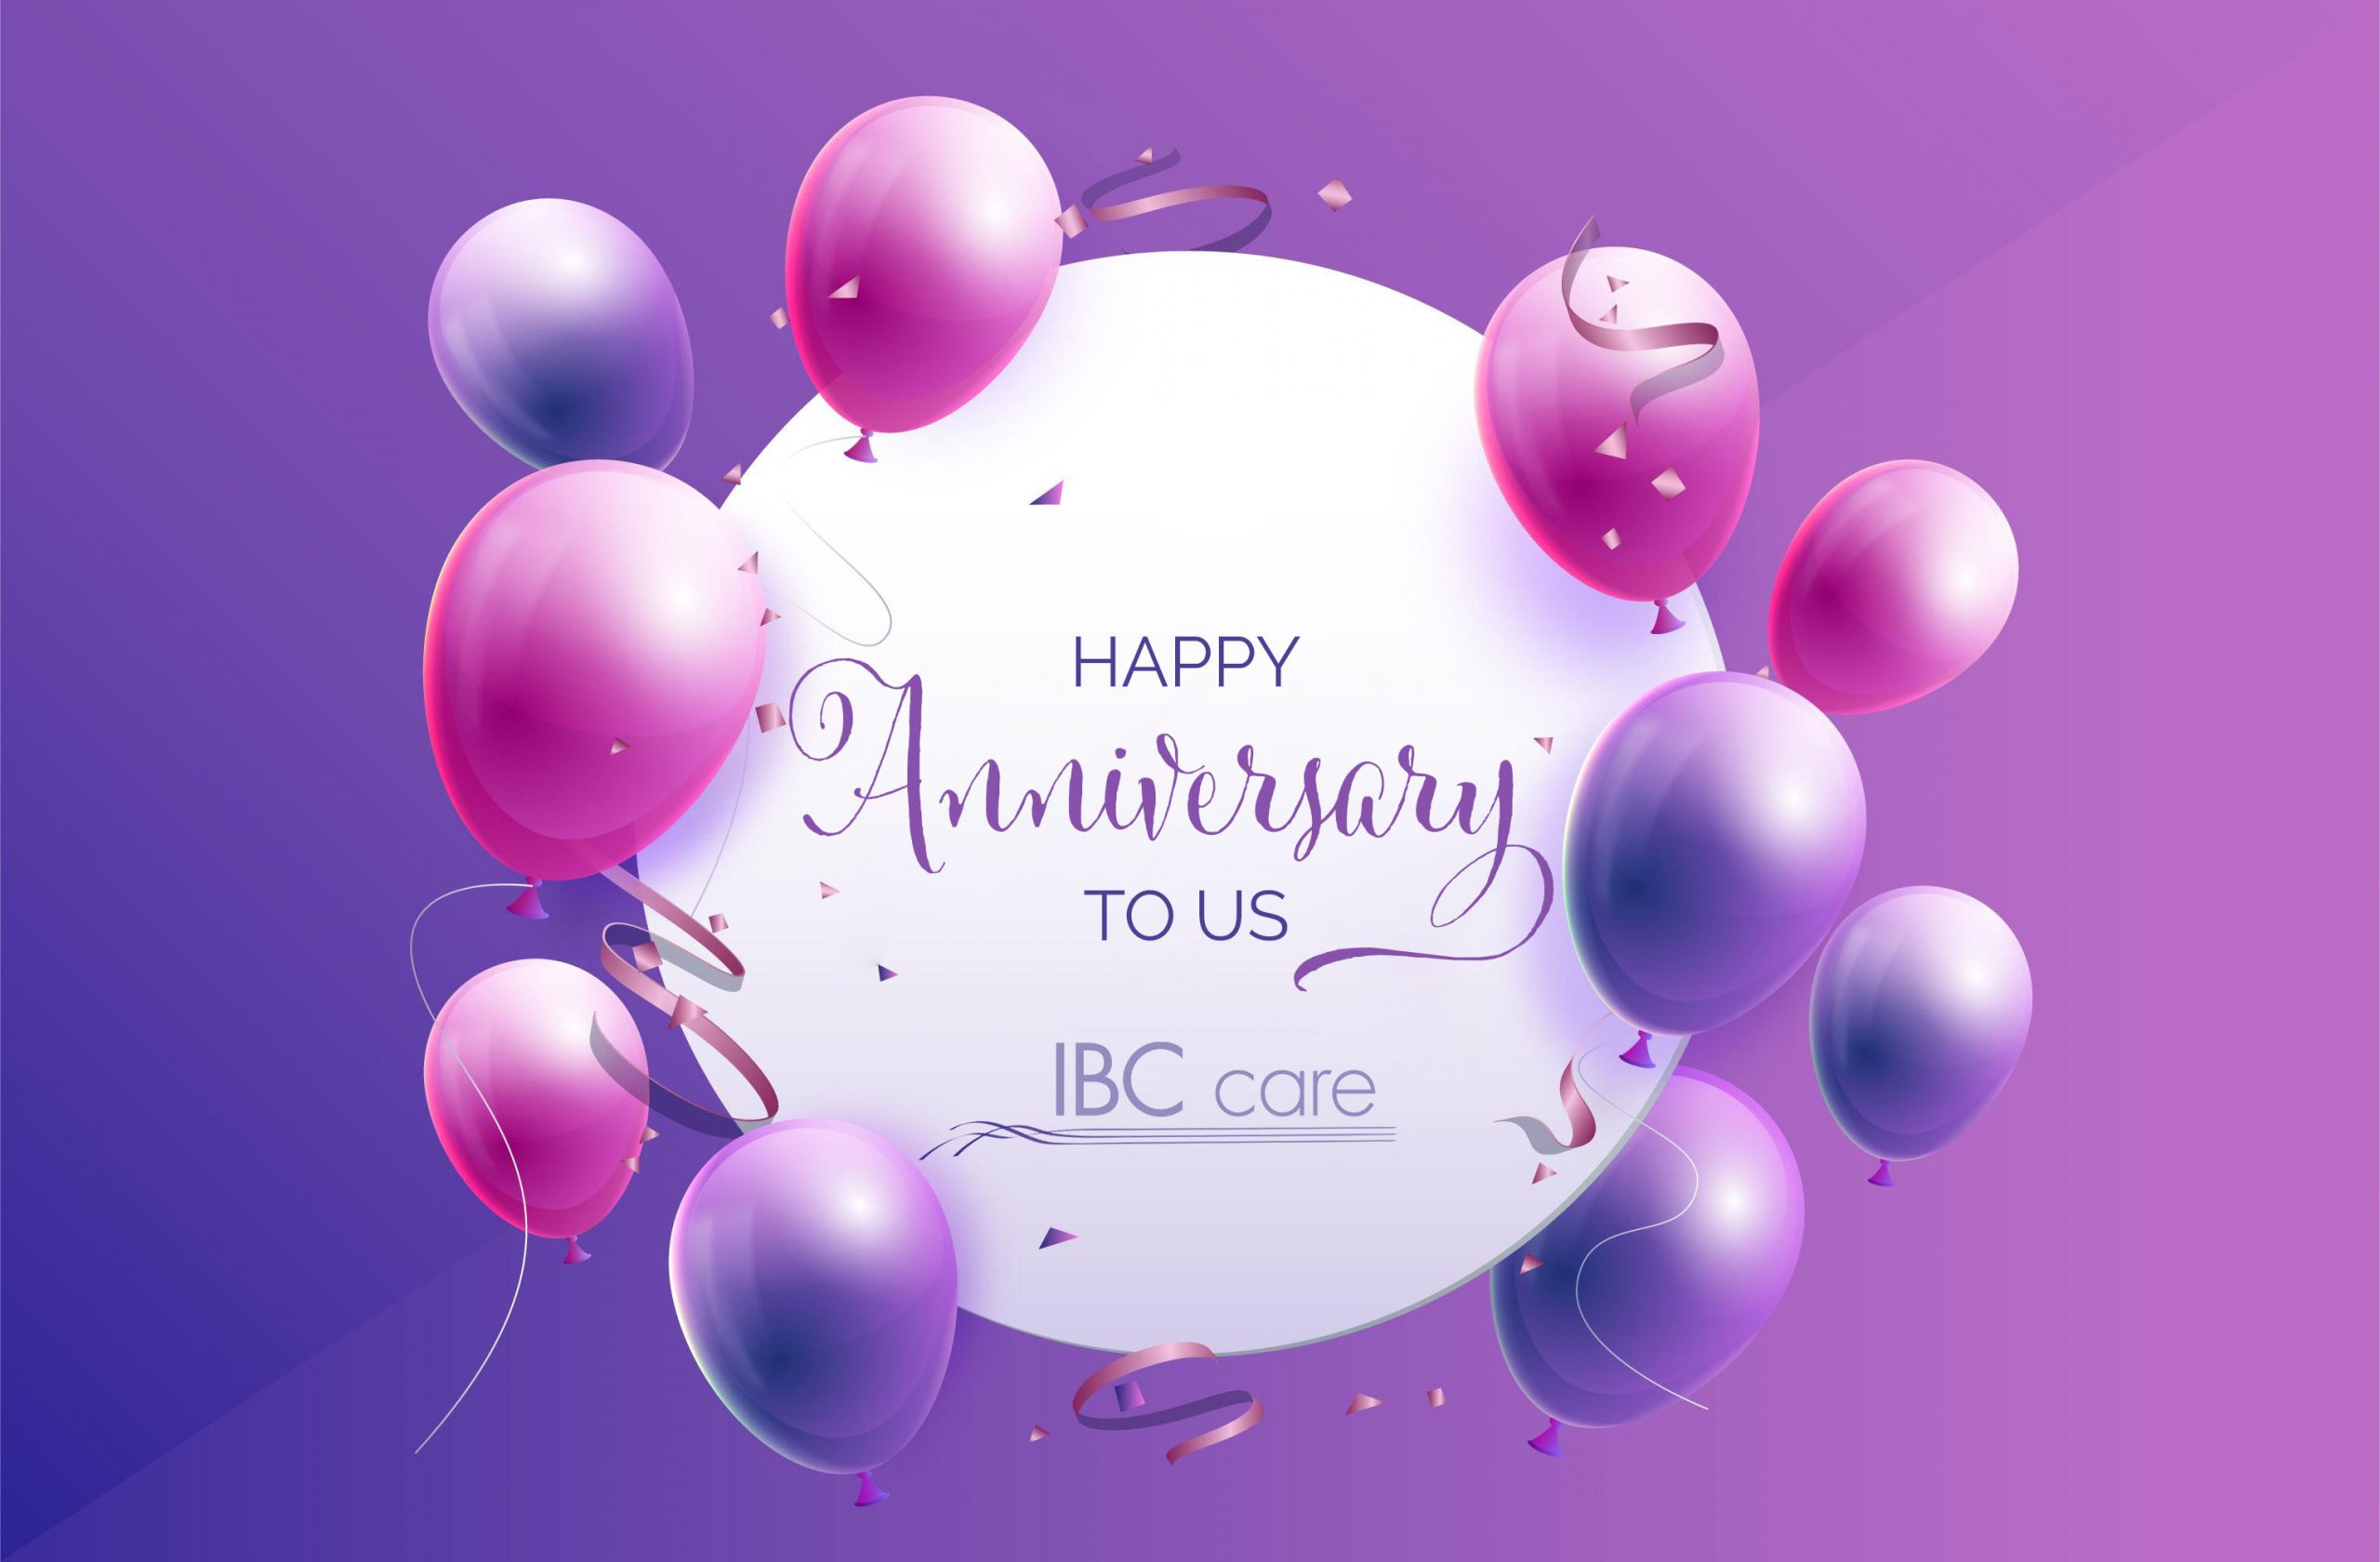 Happy Anniversary, IBCcare!